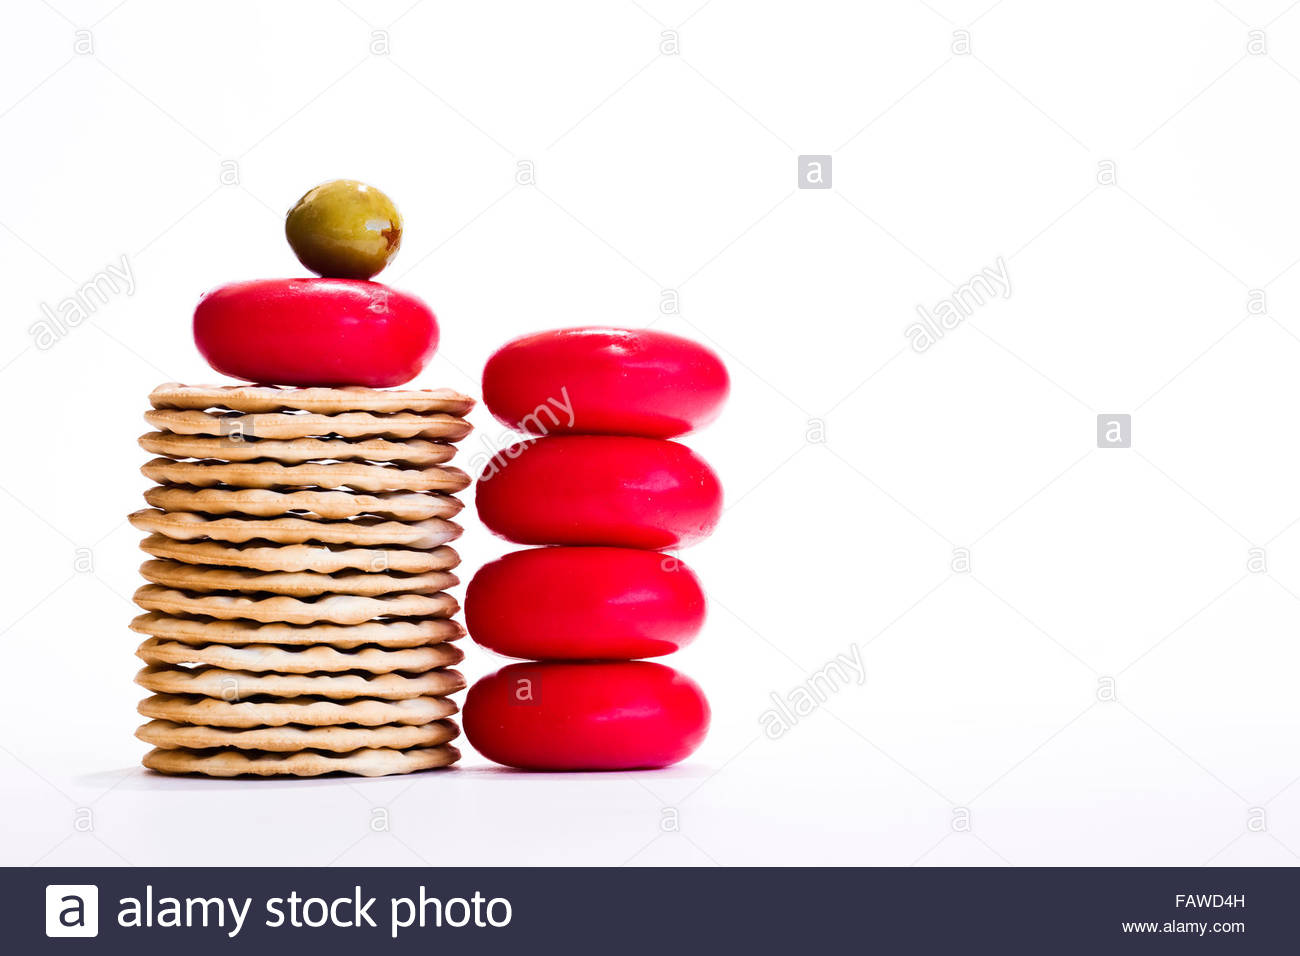 Stack of round cheeses with biscuits and olive on white background - Stock Image